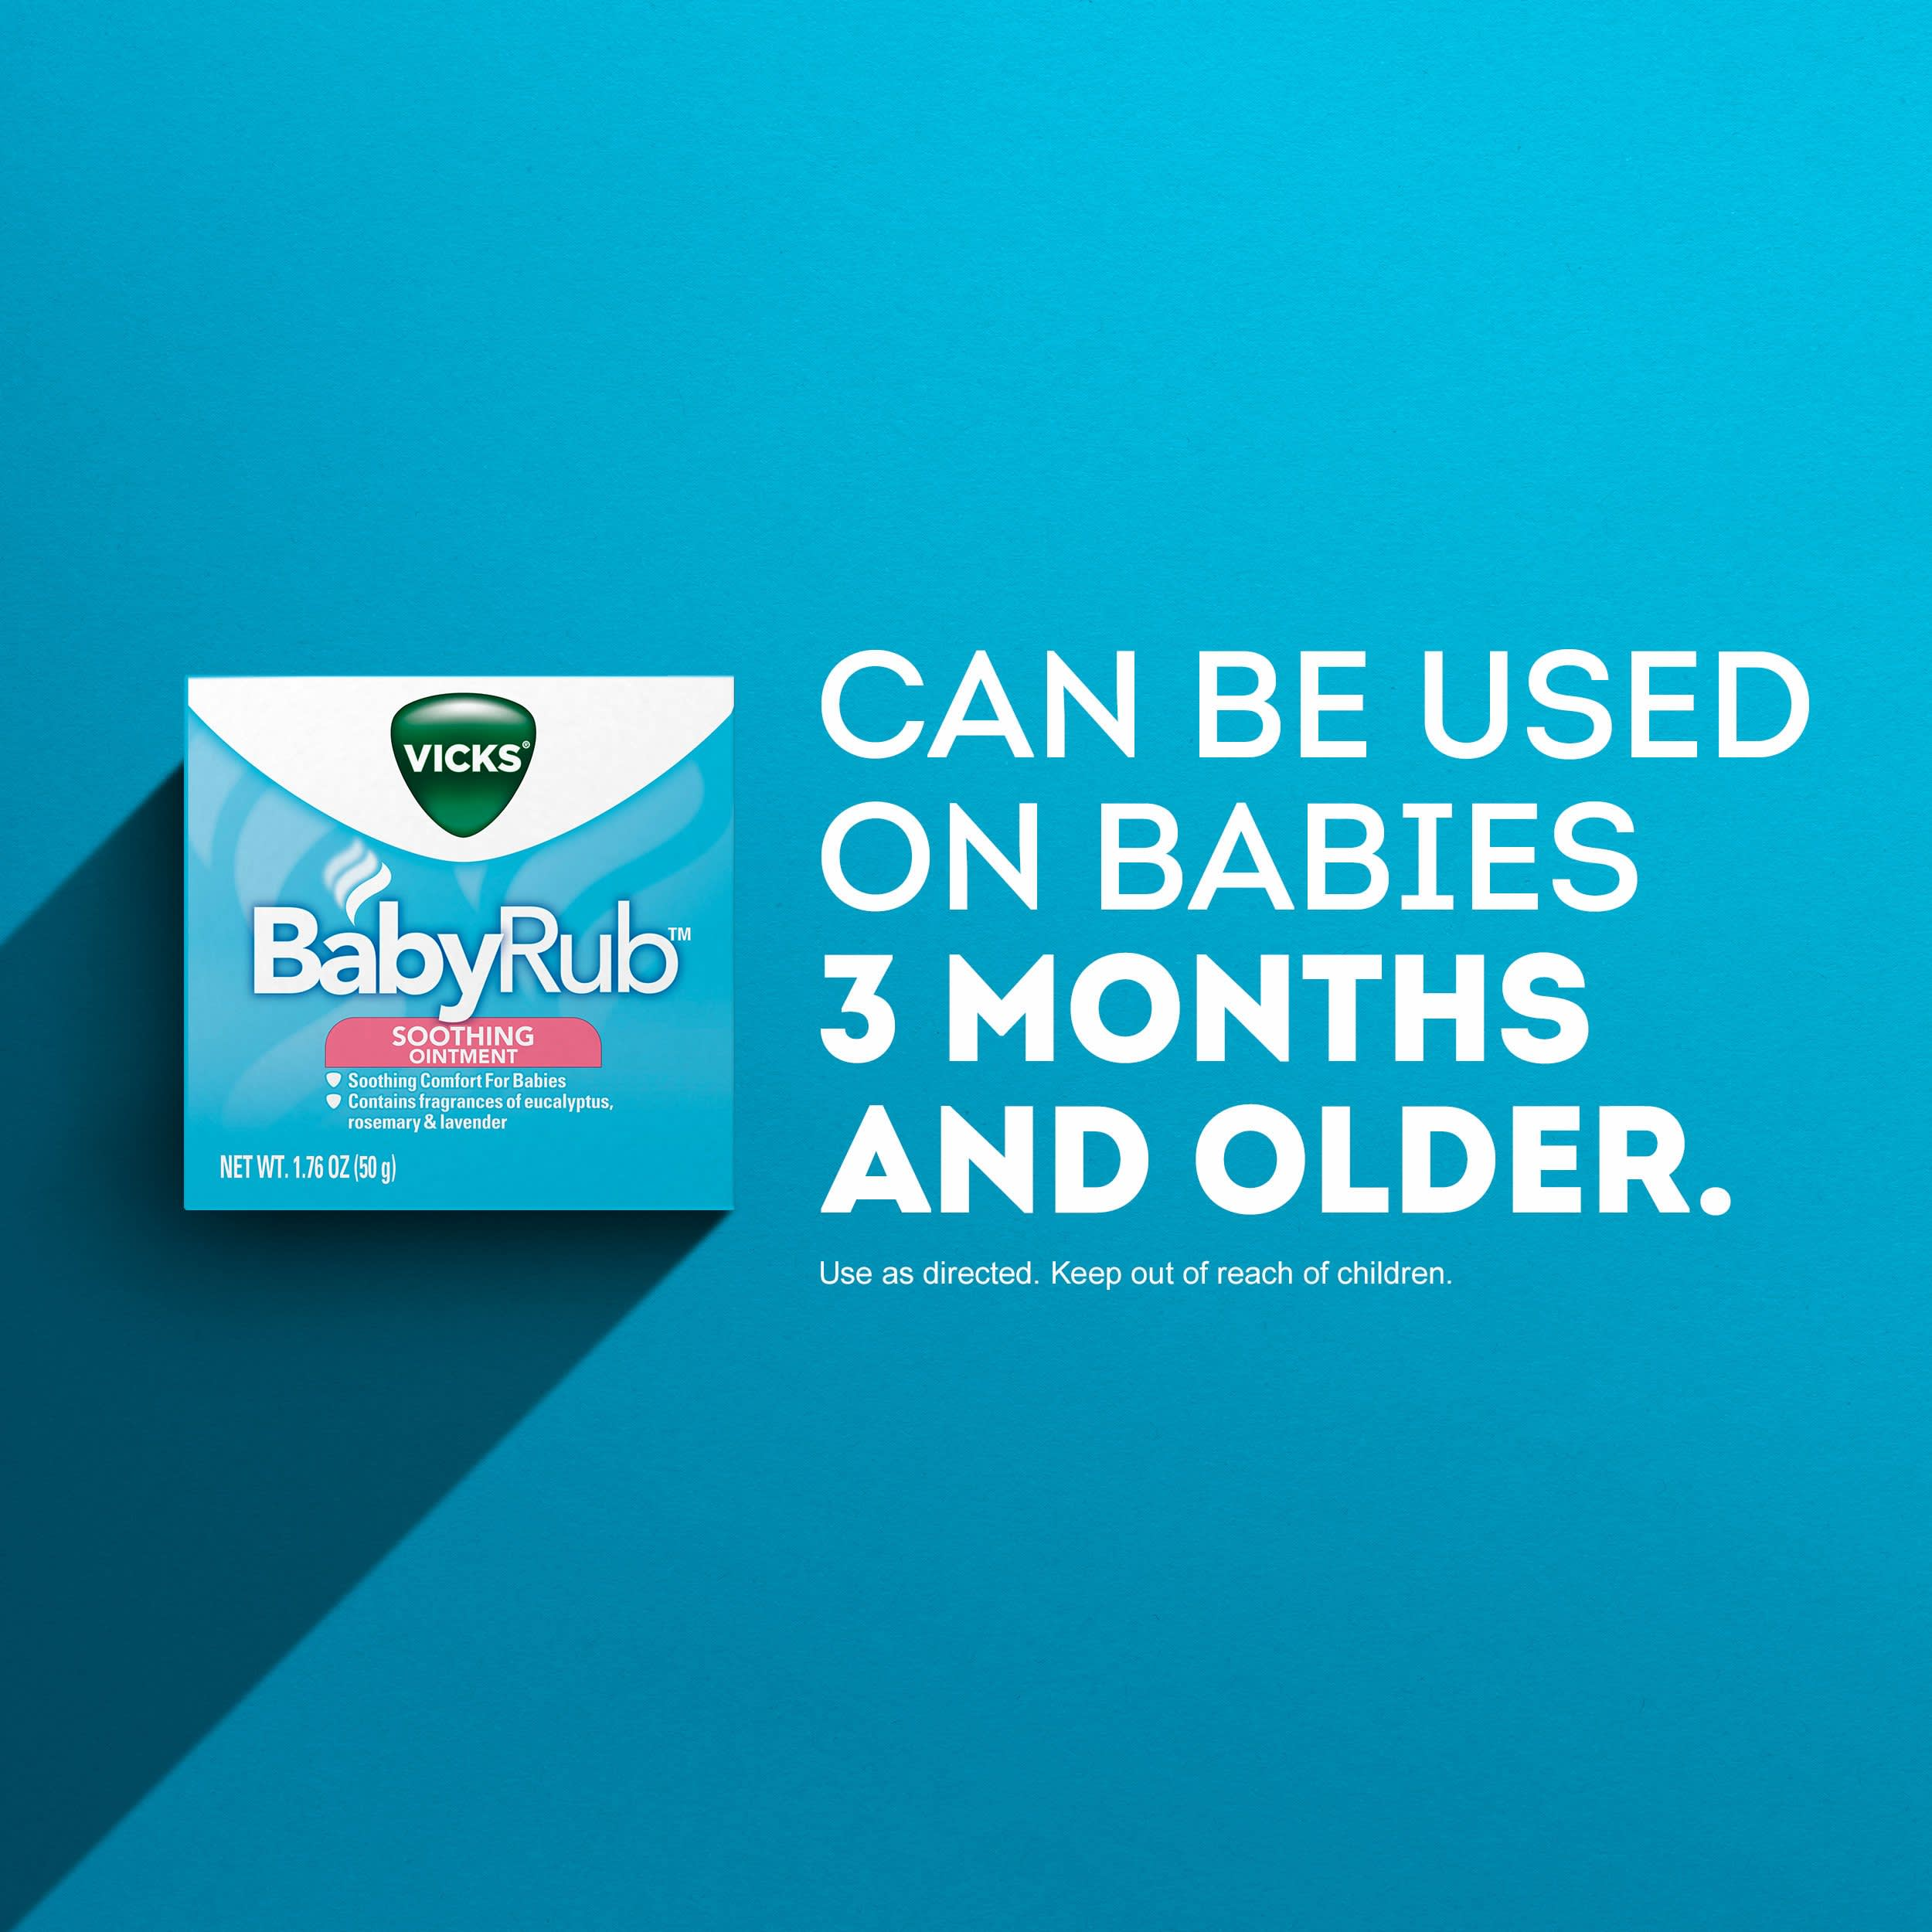 babyrub-soothing-ointment-can-be-used-on-babies-3-months-and-older